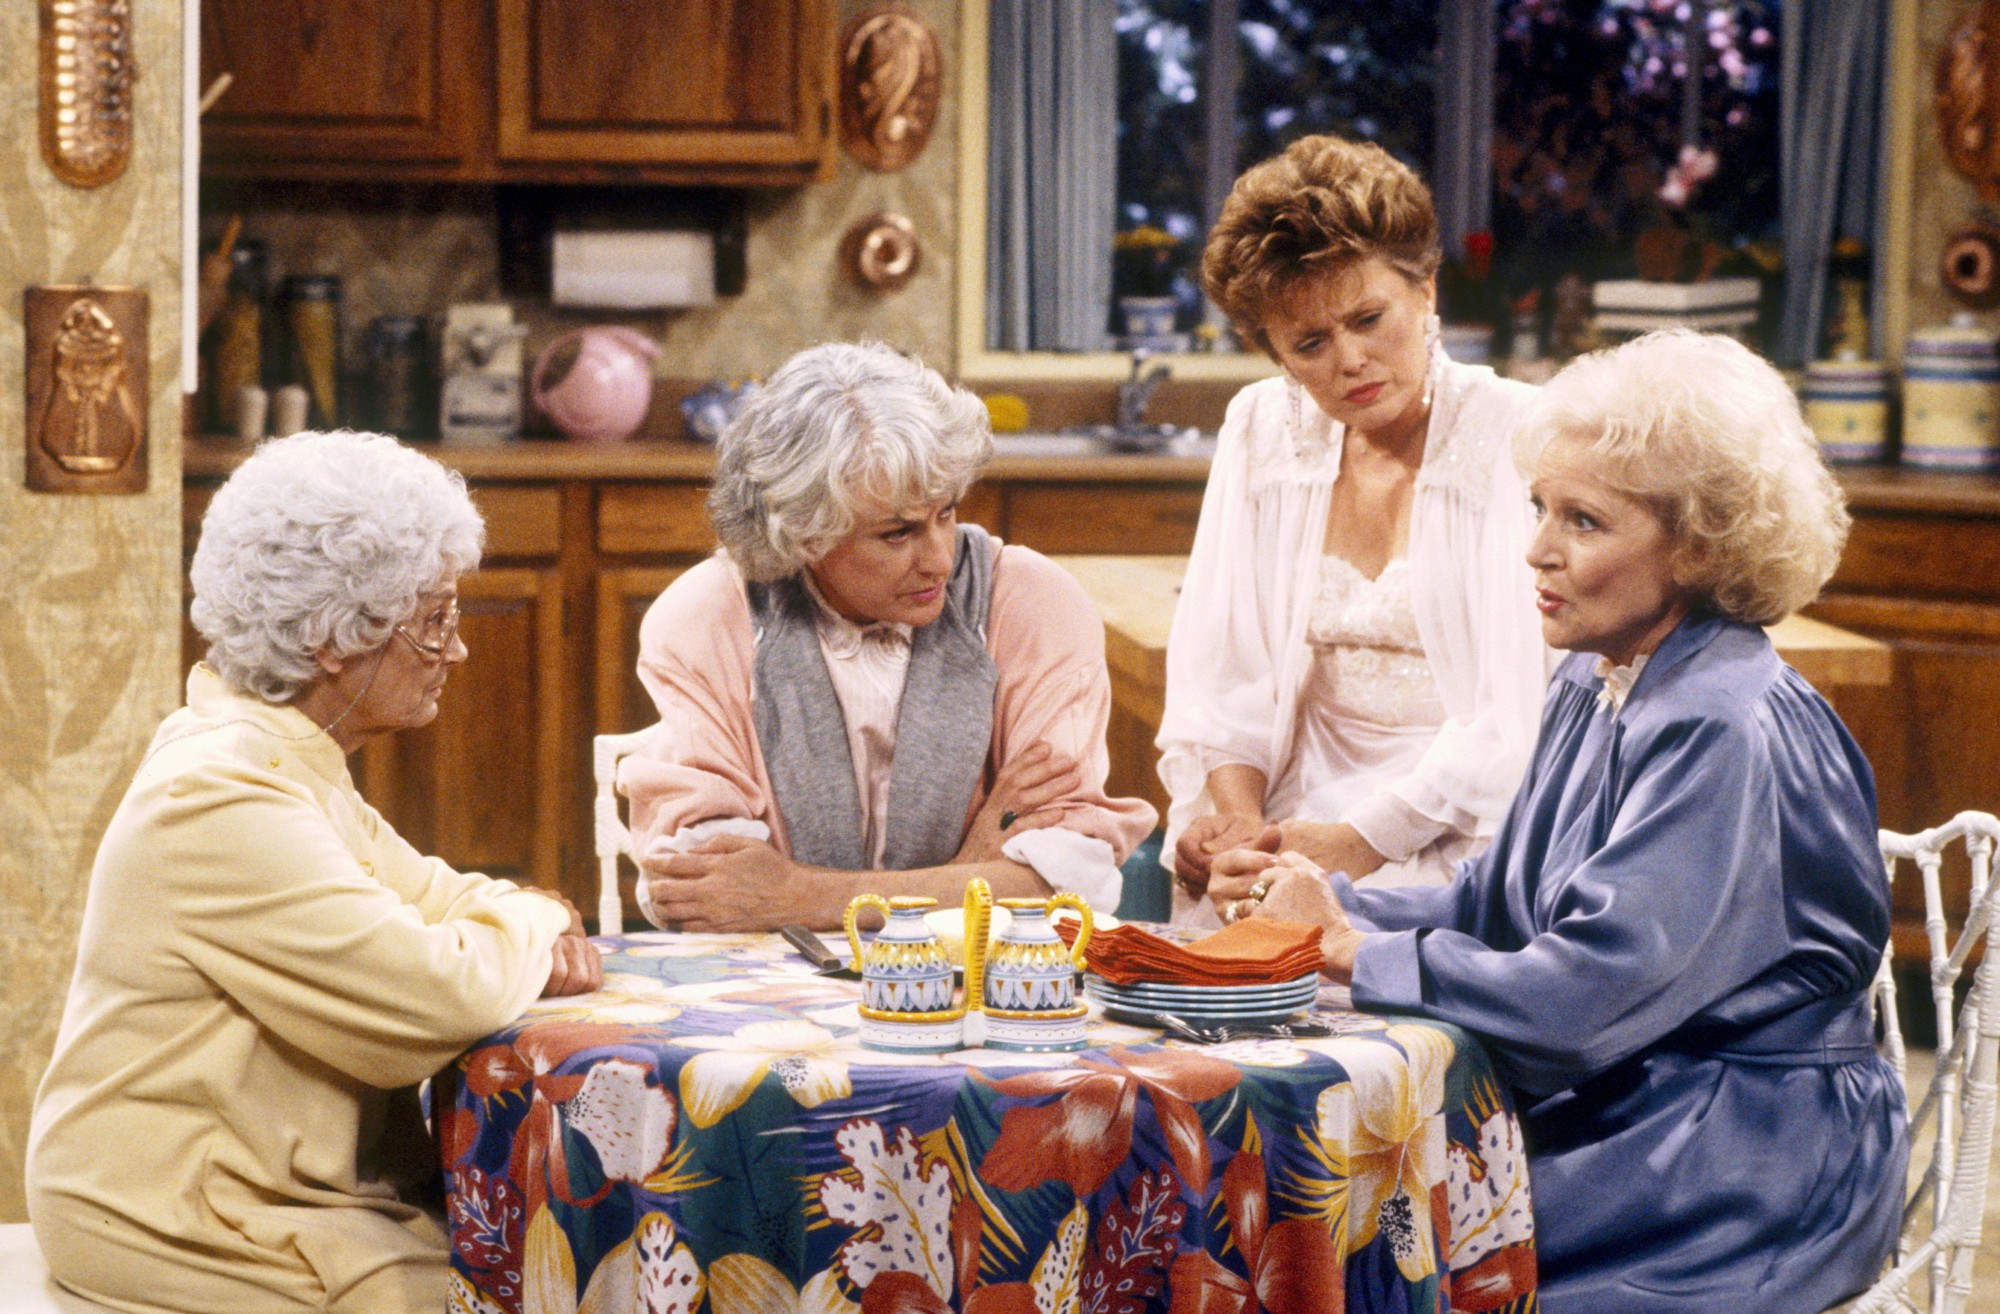 Estelle Getty, Beatrice Arthur,Rue McClanahan and Betty White